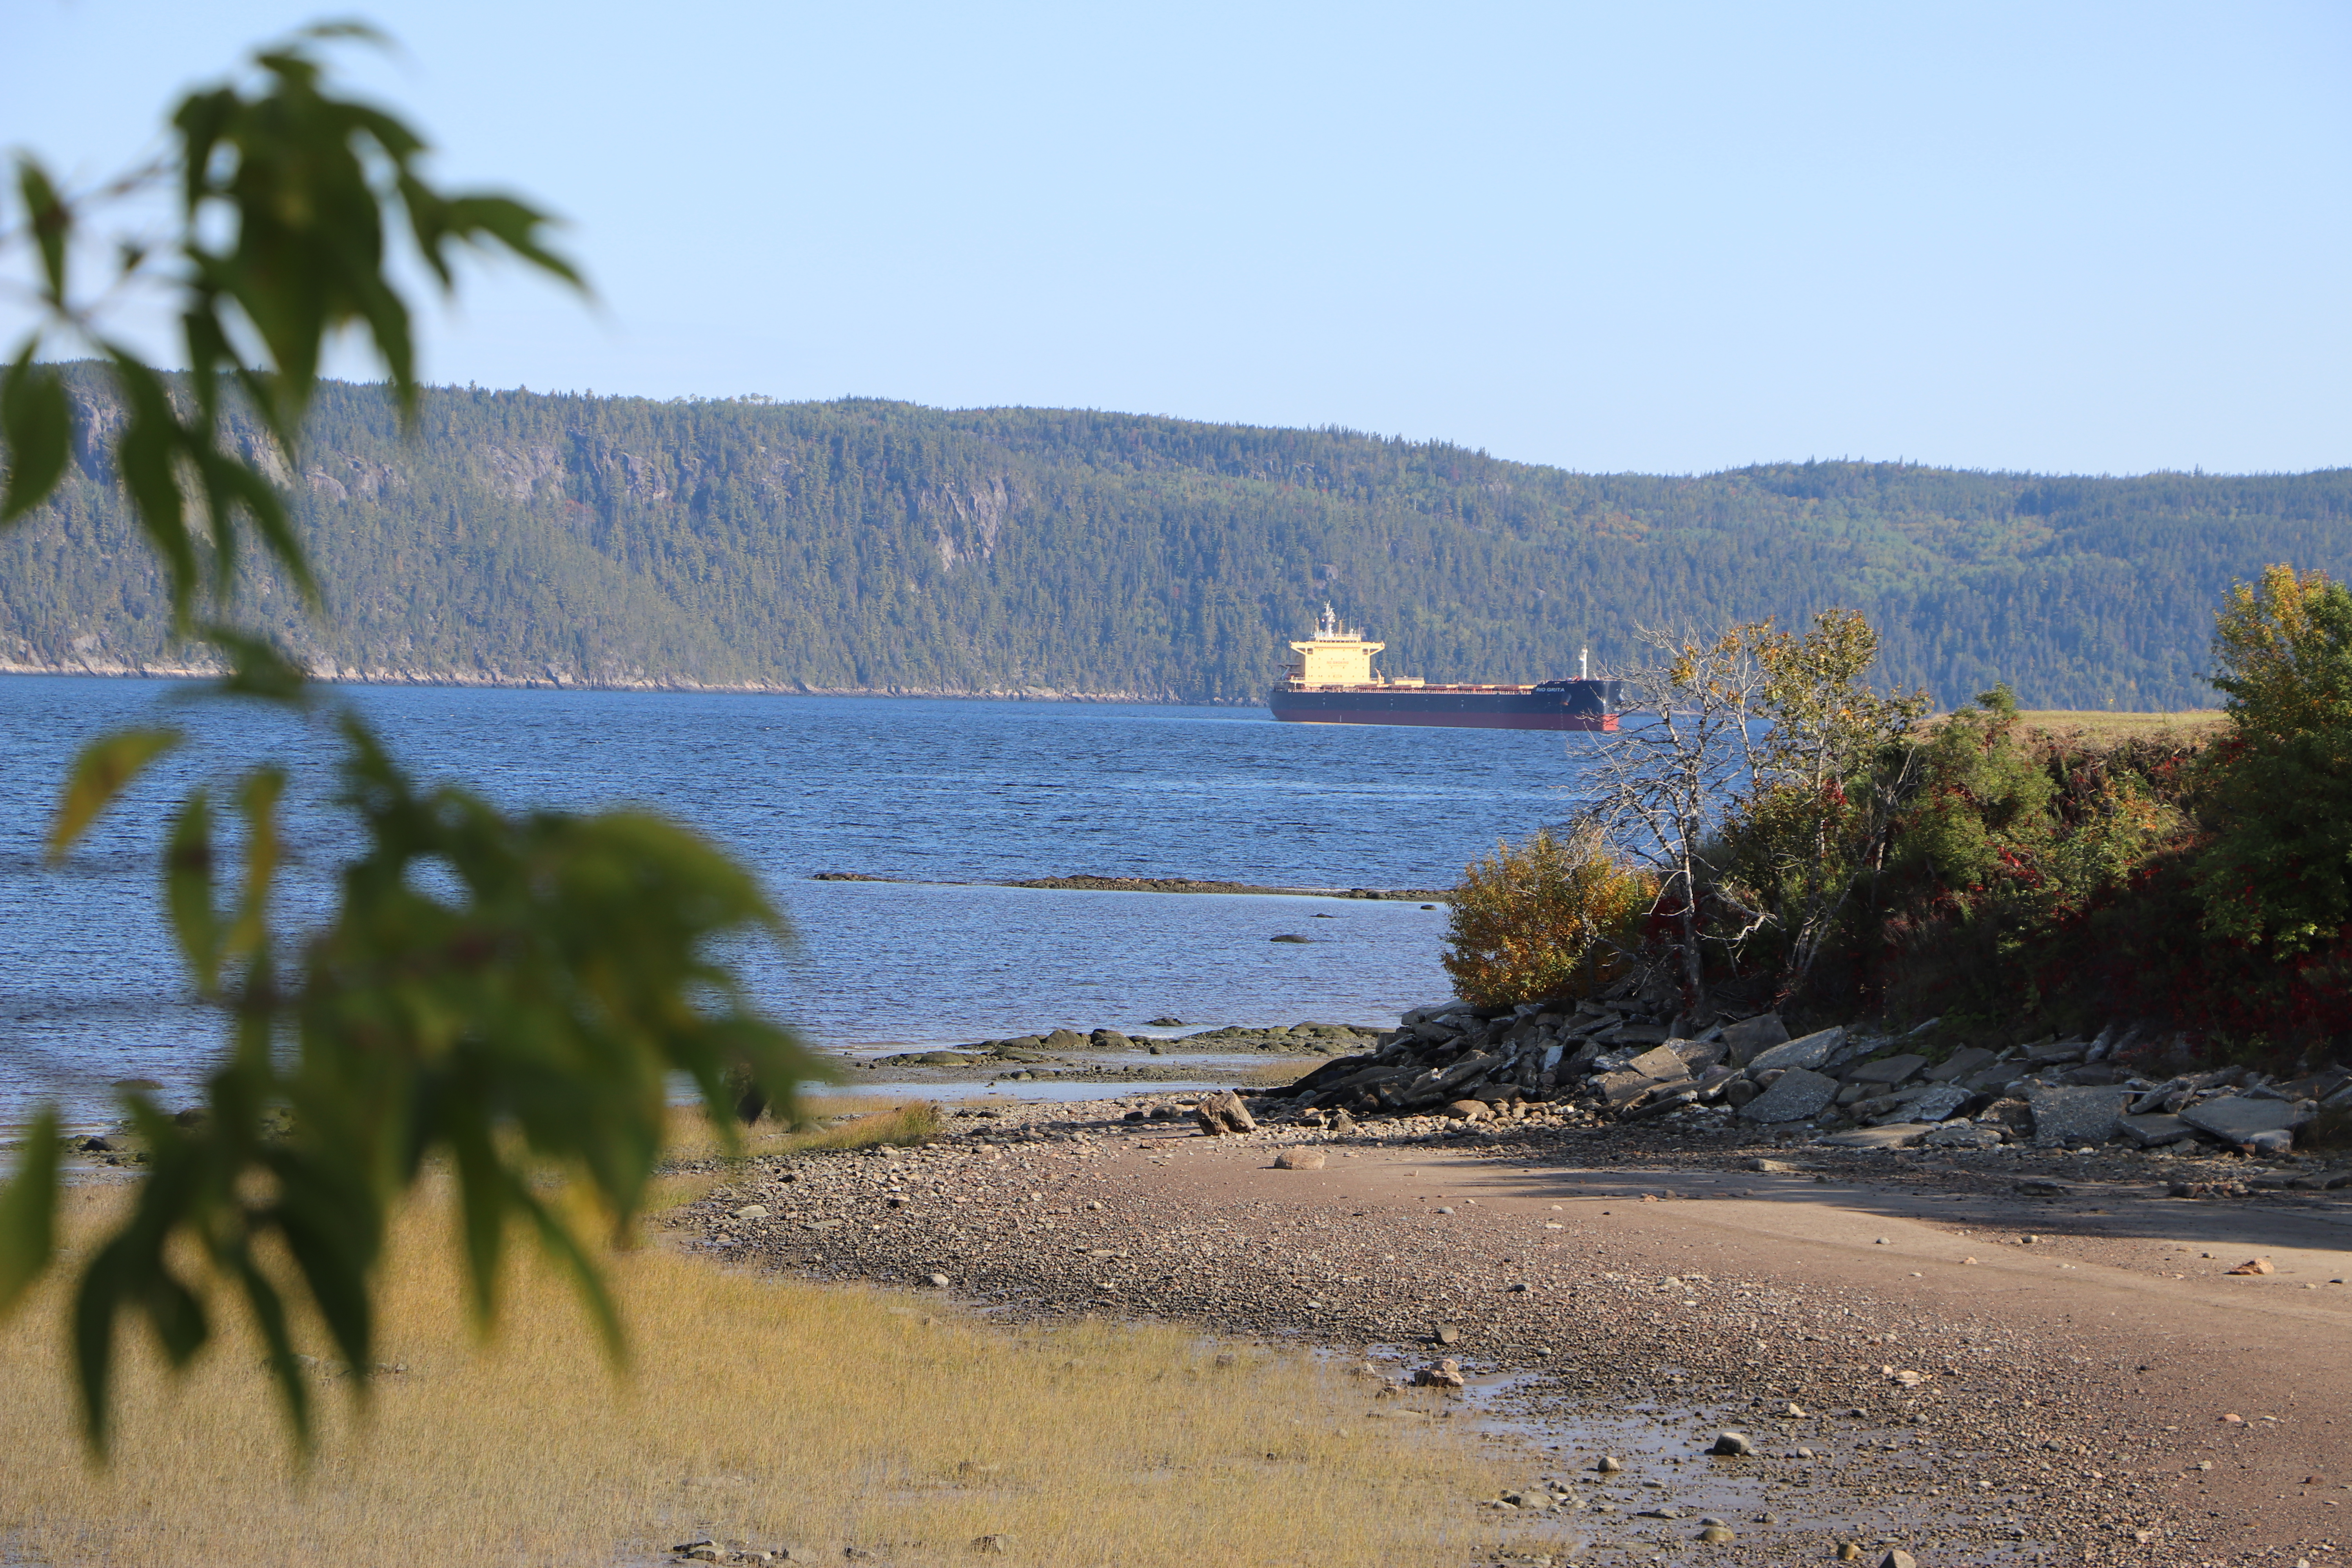 A cargo ship heading for the Rio Tinto port facilities waits to enter La Baie des Ha! Ha!, on the Saguenay Fjord.